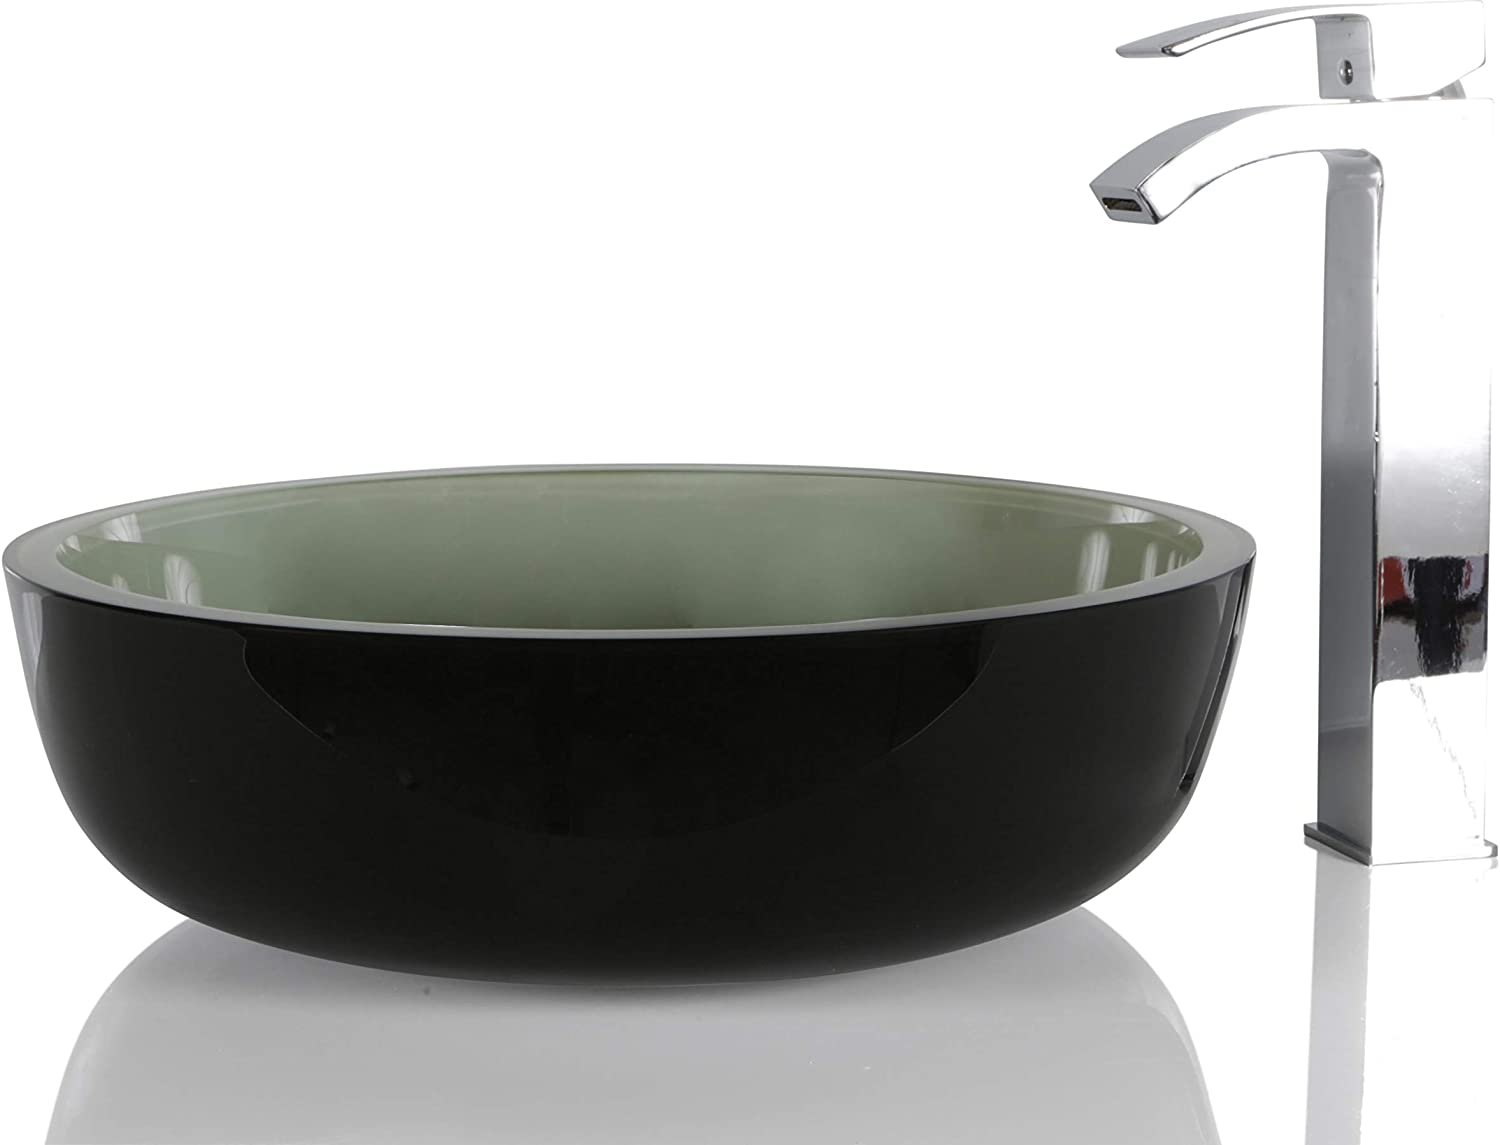 Green Glass Round Wash Basin - Designer Bathroom Countertop Sink with Free Waste in Ombre Effect